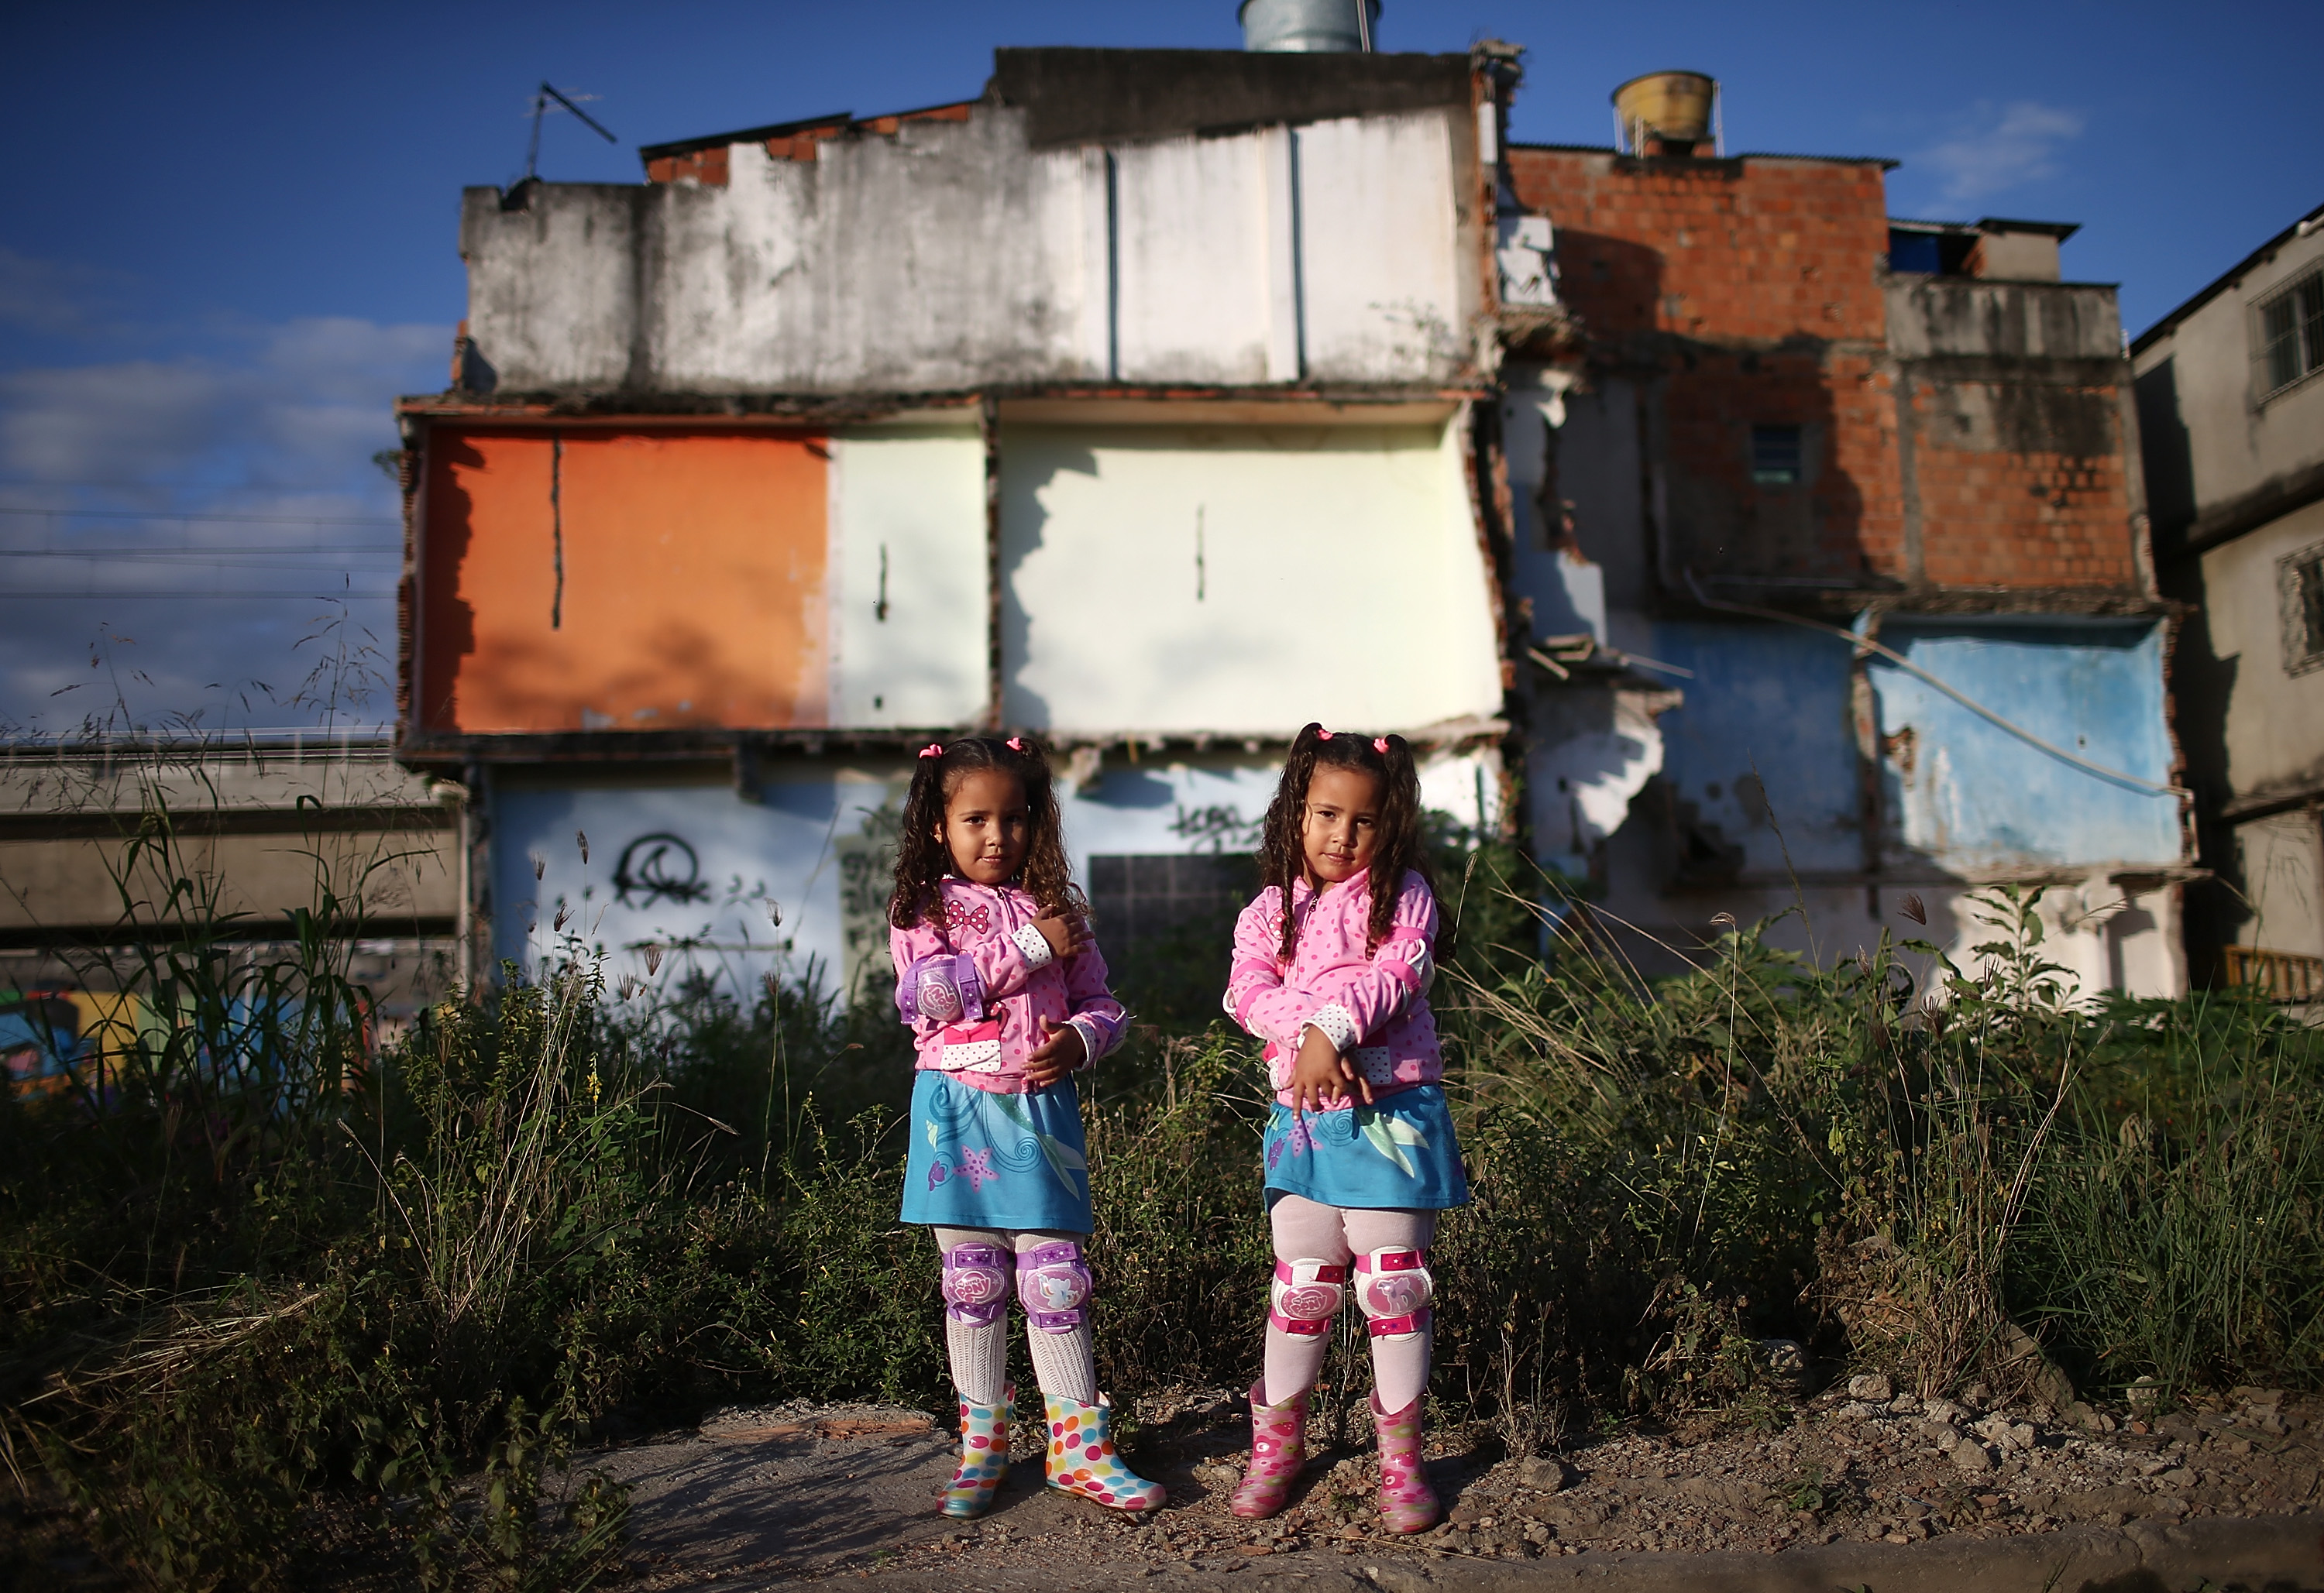 Twins Wendy (R) and Isis Guimaraes (L) pose in front of their home which remains standing in an area where homes were torn down in the Manguinhos community on May 27, 2014 in Rio de Janeiro.